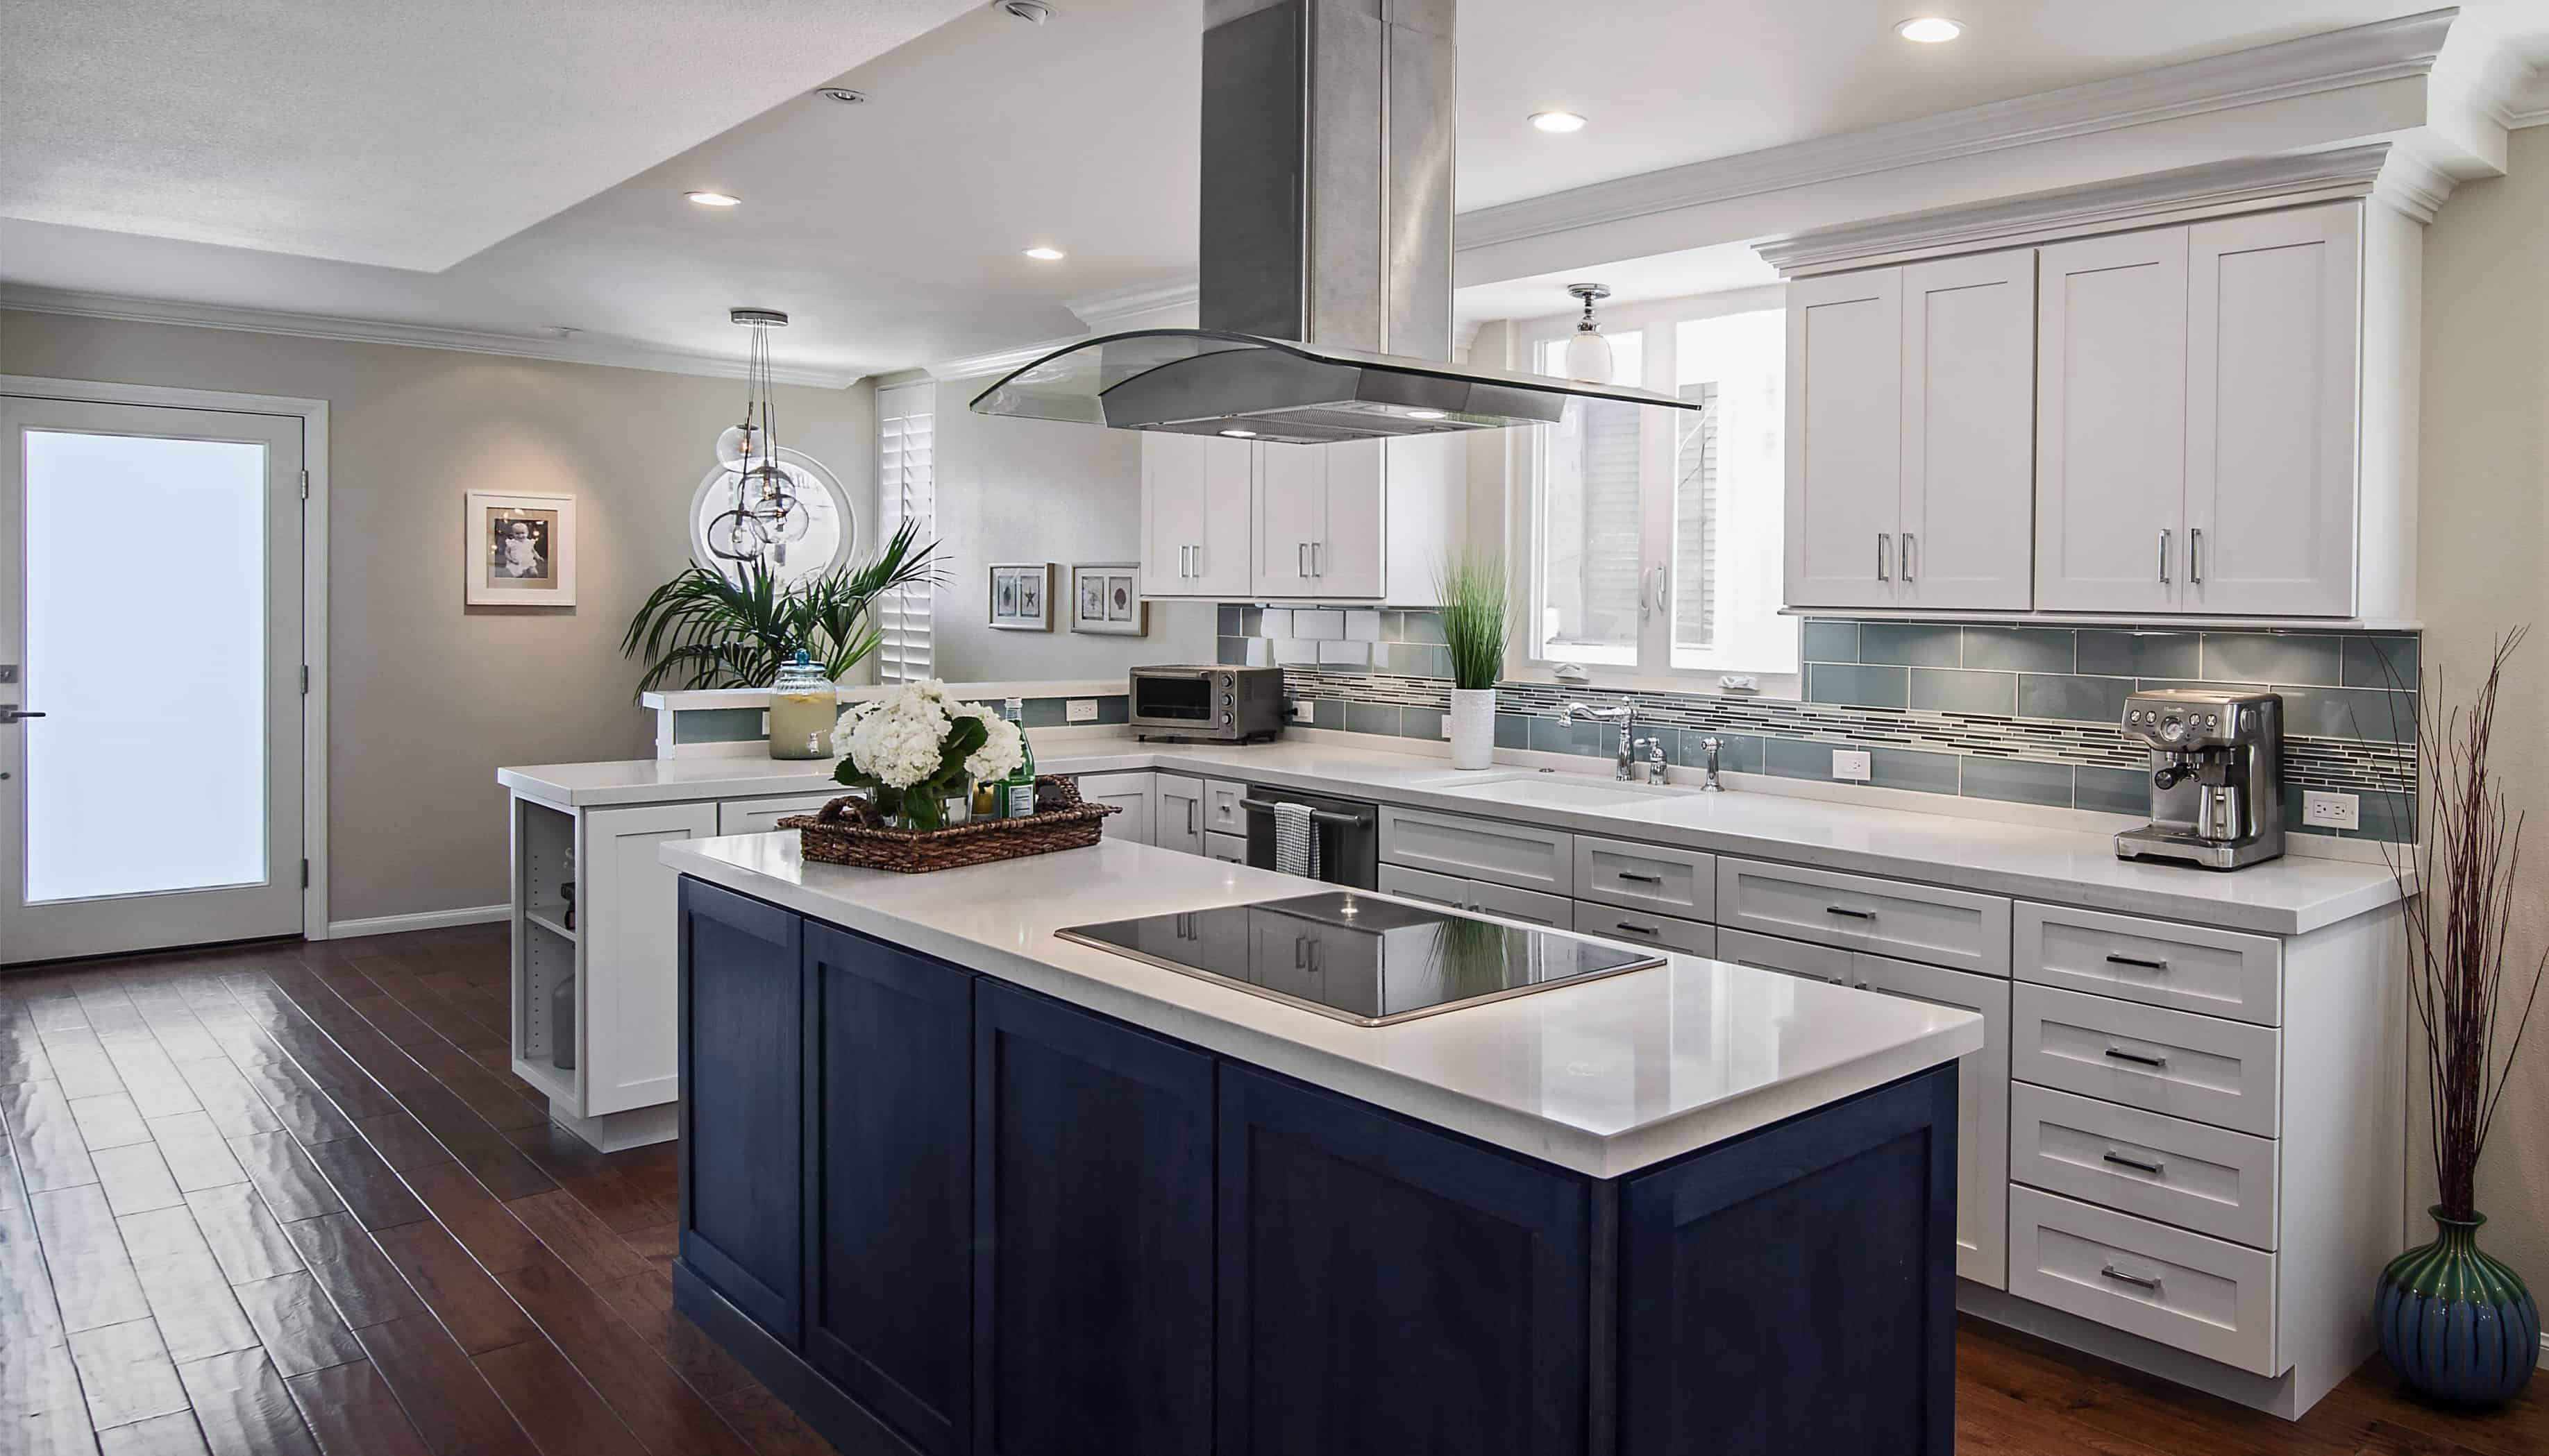 Having a double duty kitchen island is great. It is quite beneficial to have a kitchen island that allows you to cook meals while still being part of the entertainment in the kitchen space.